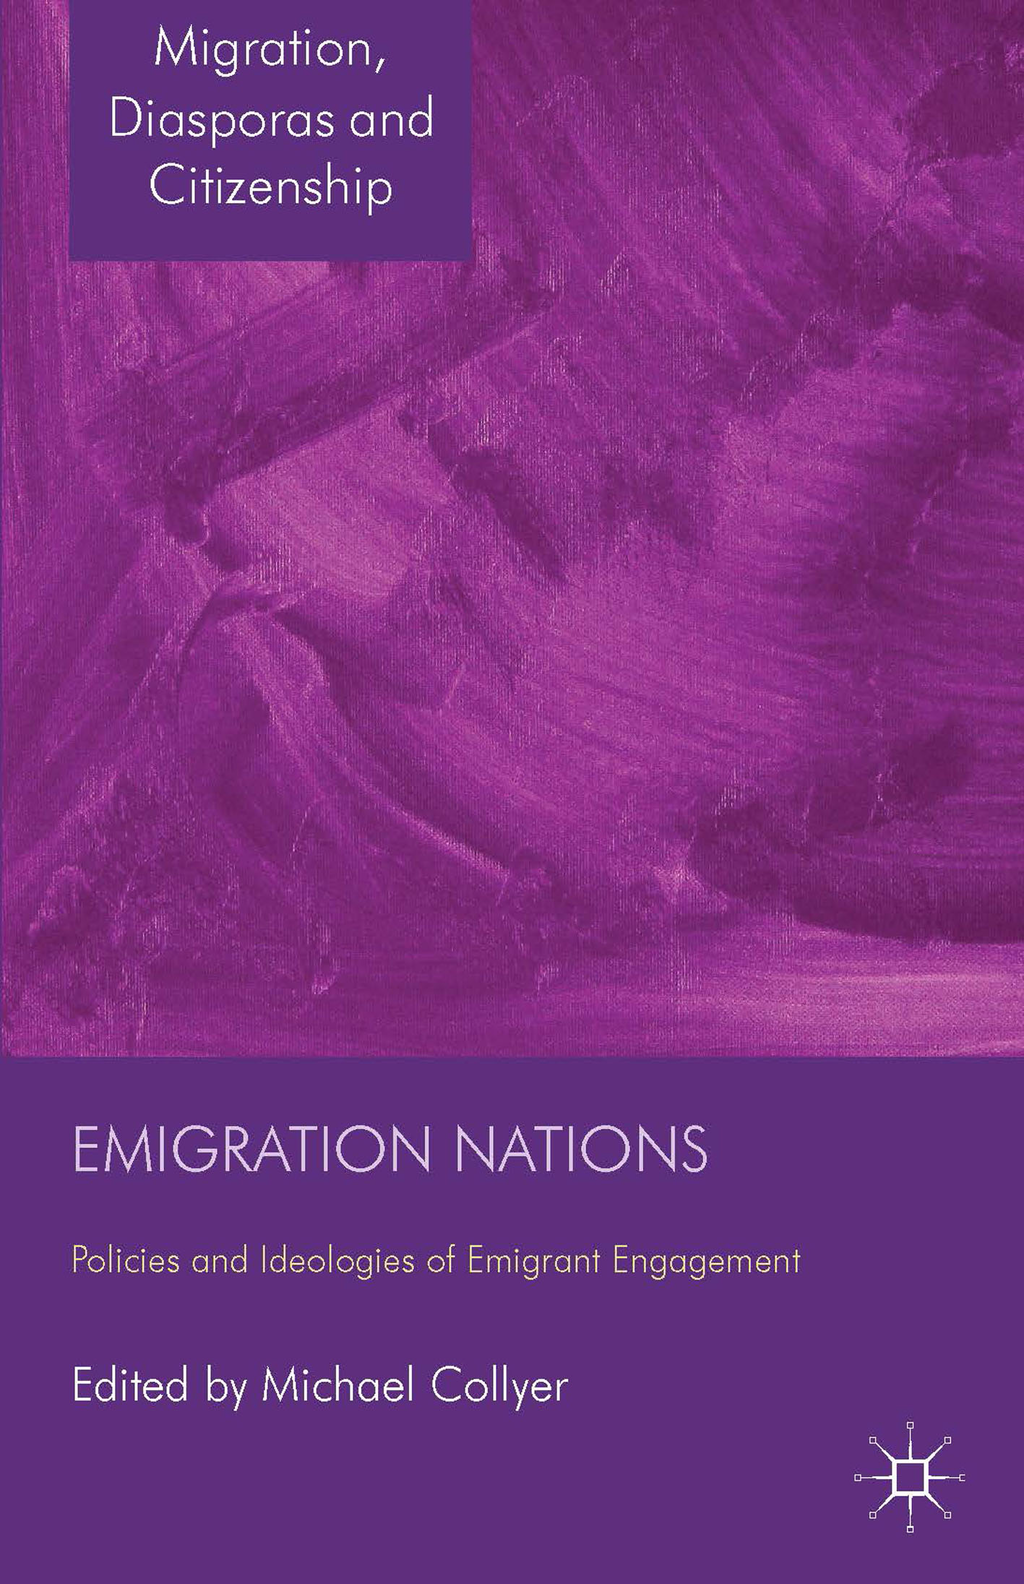 Emigration Nations Policies and Ideologies of Emigrant Engagement